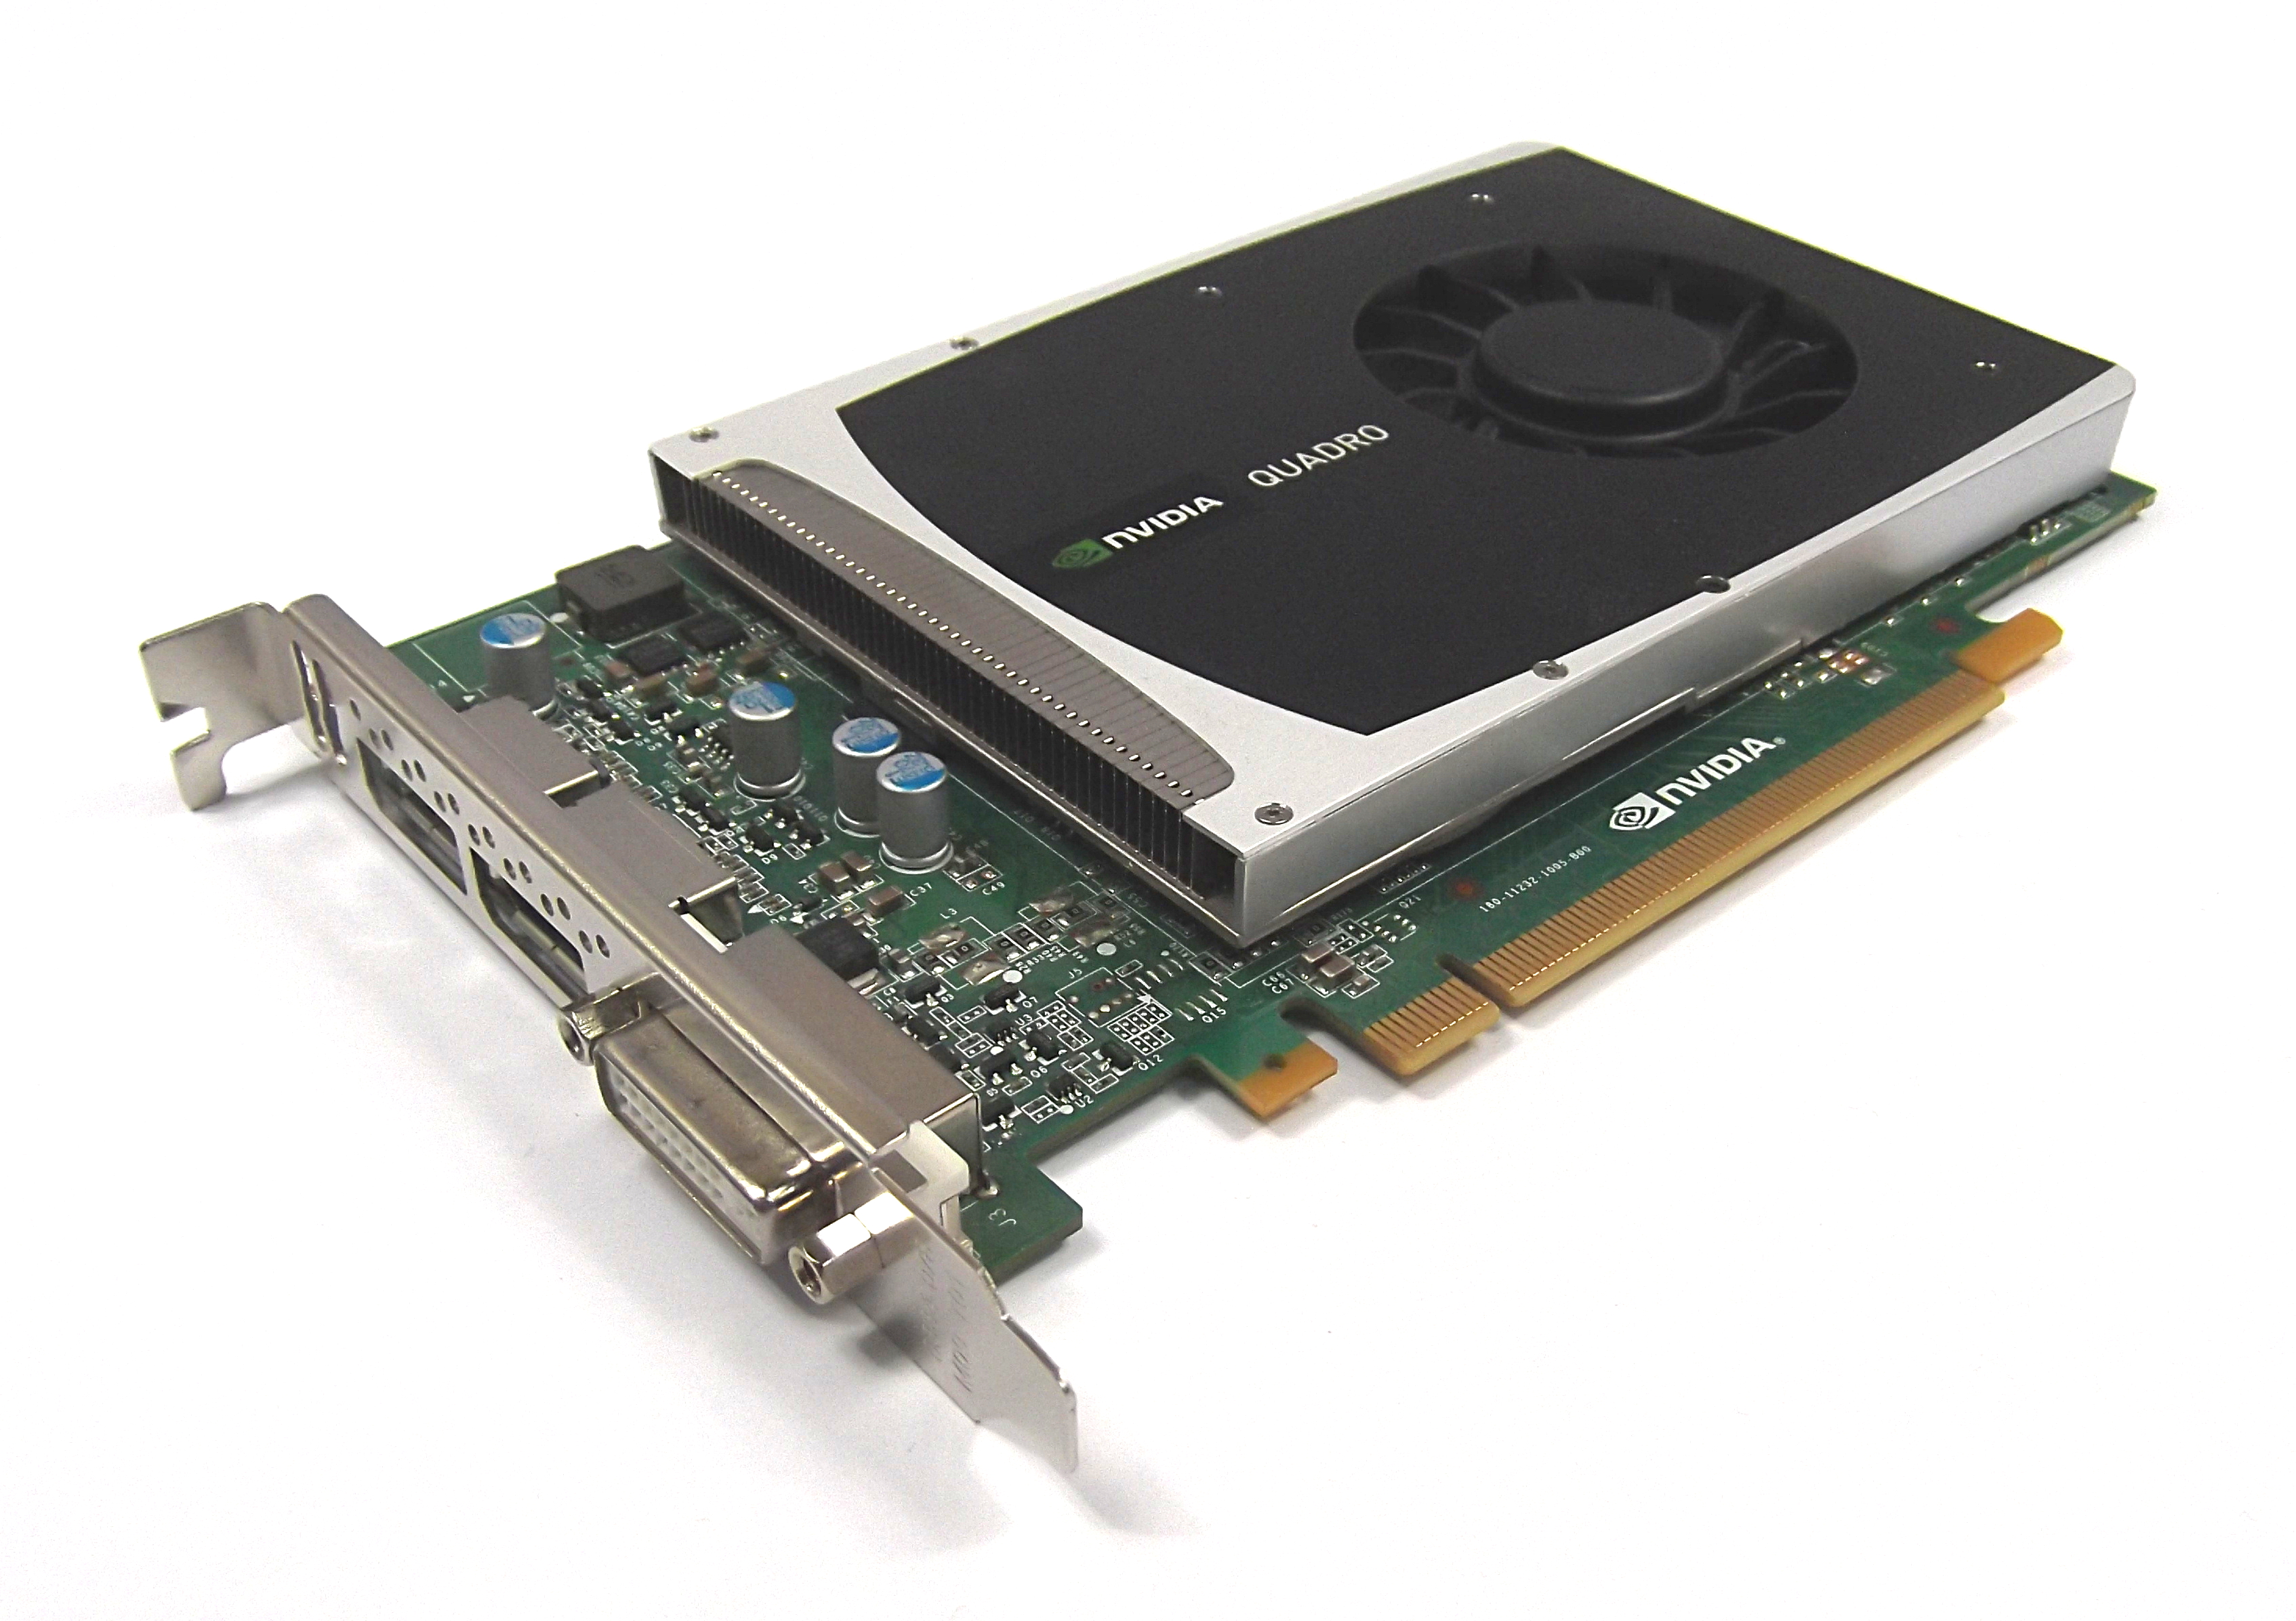 Dell 2PNXF Nvidia Quadro 2000 1GB GDDR5 DVI/Dual DisplayPort PCIe Graphics Card